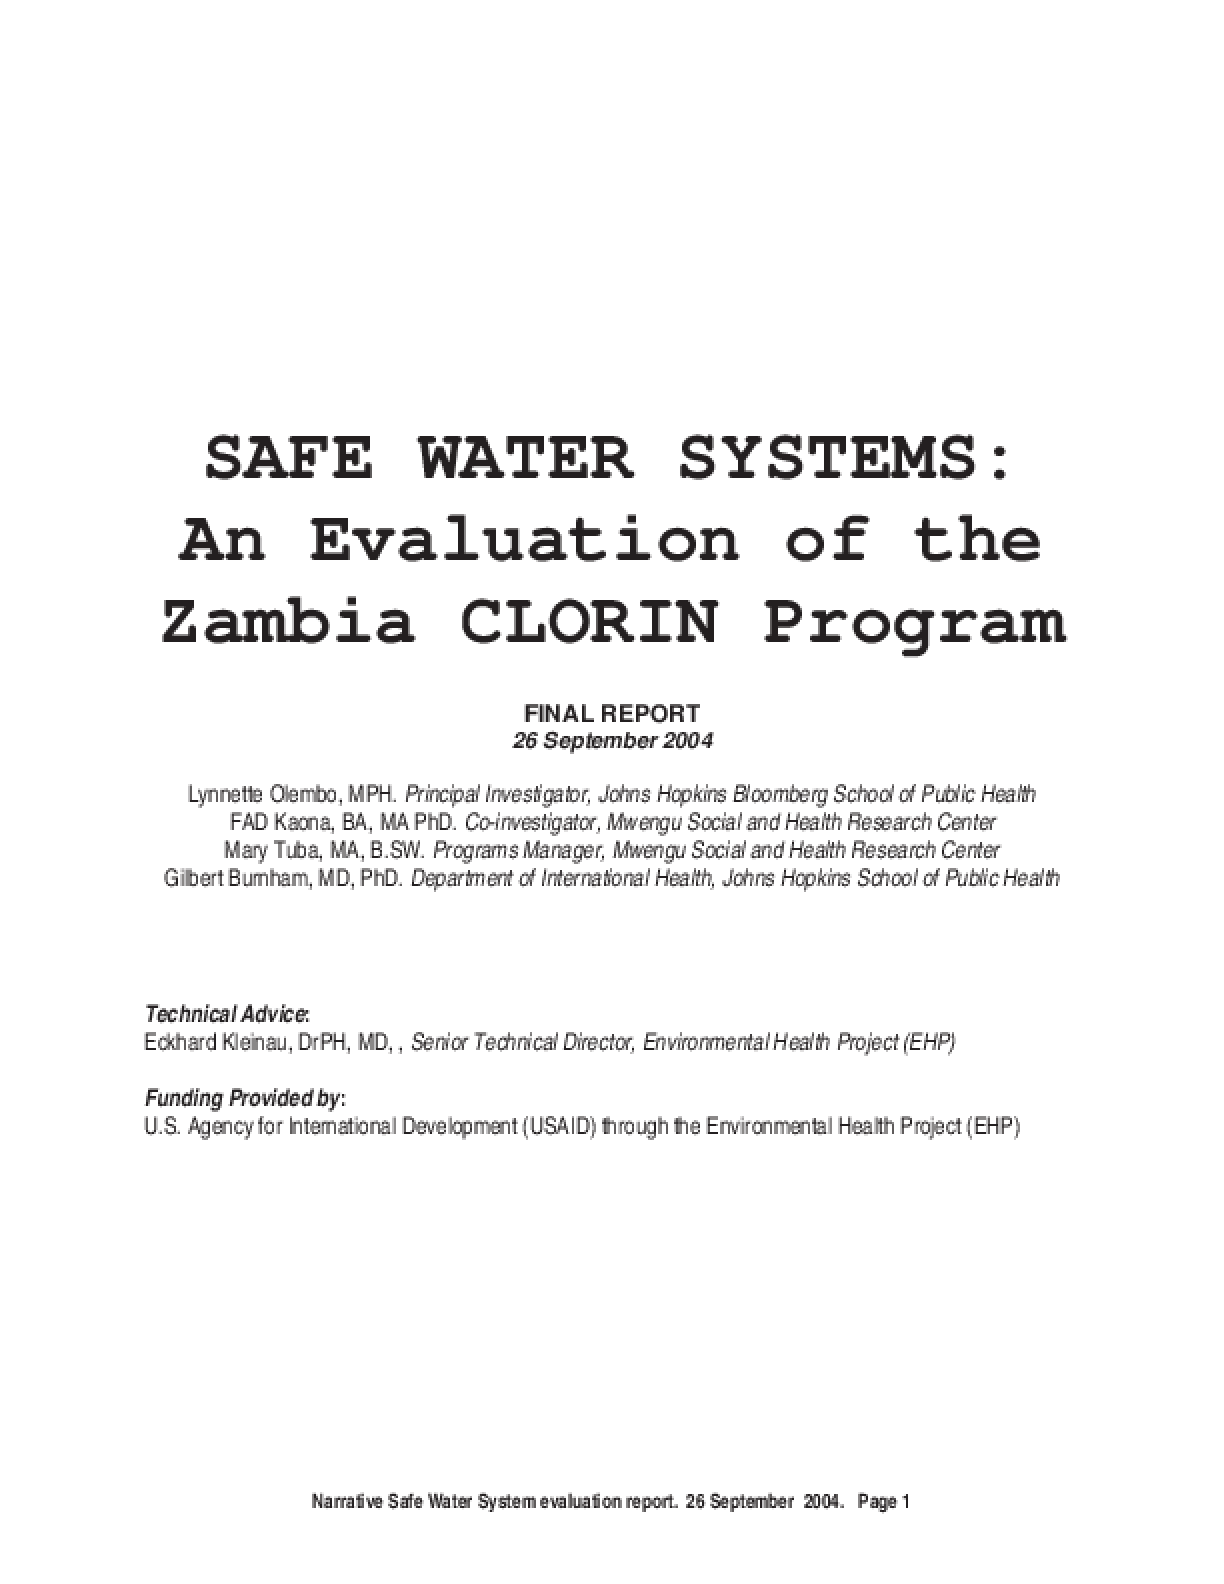 Safe Water Systems: An Evaluation of the Zambia Clorin Program